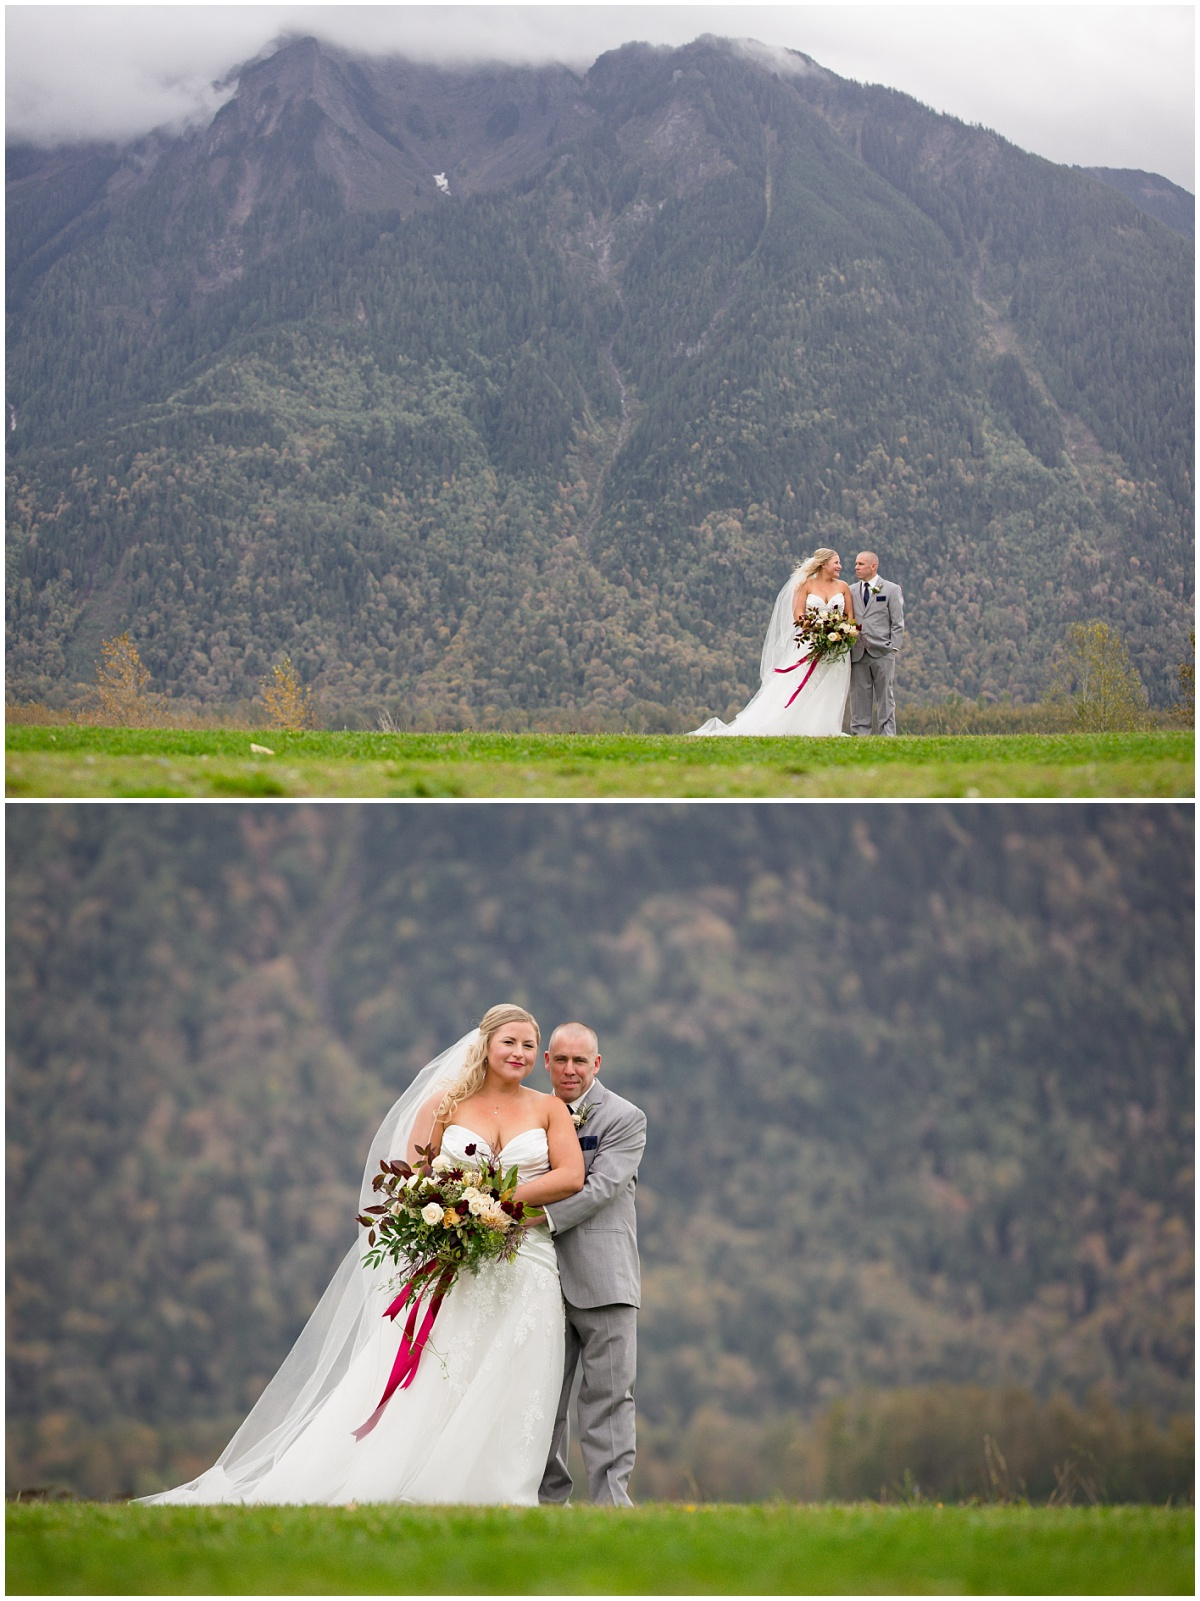 Amazing Day Photography - Fraser River Lodge Wedding - Fall Wedding - Fraser Valley Wedding Photographer - Langley Wedding Photographer (16).jpg